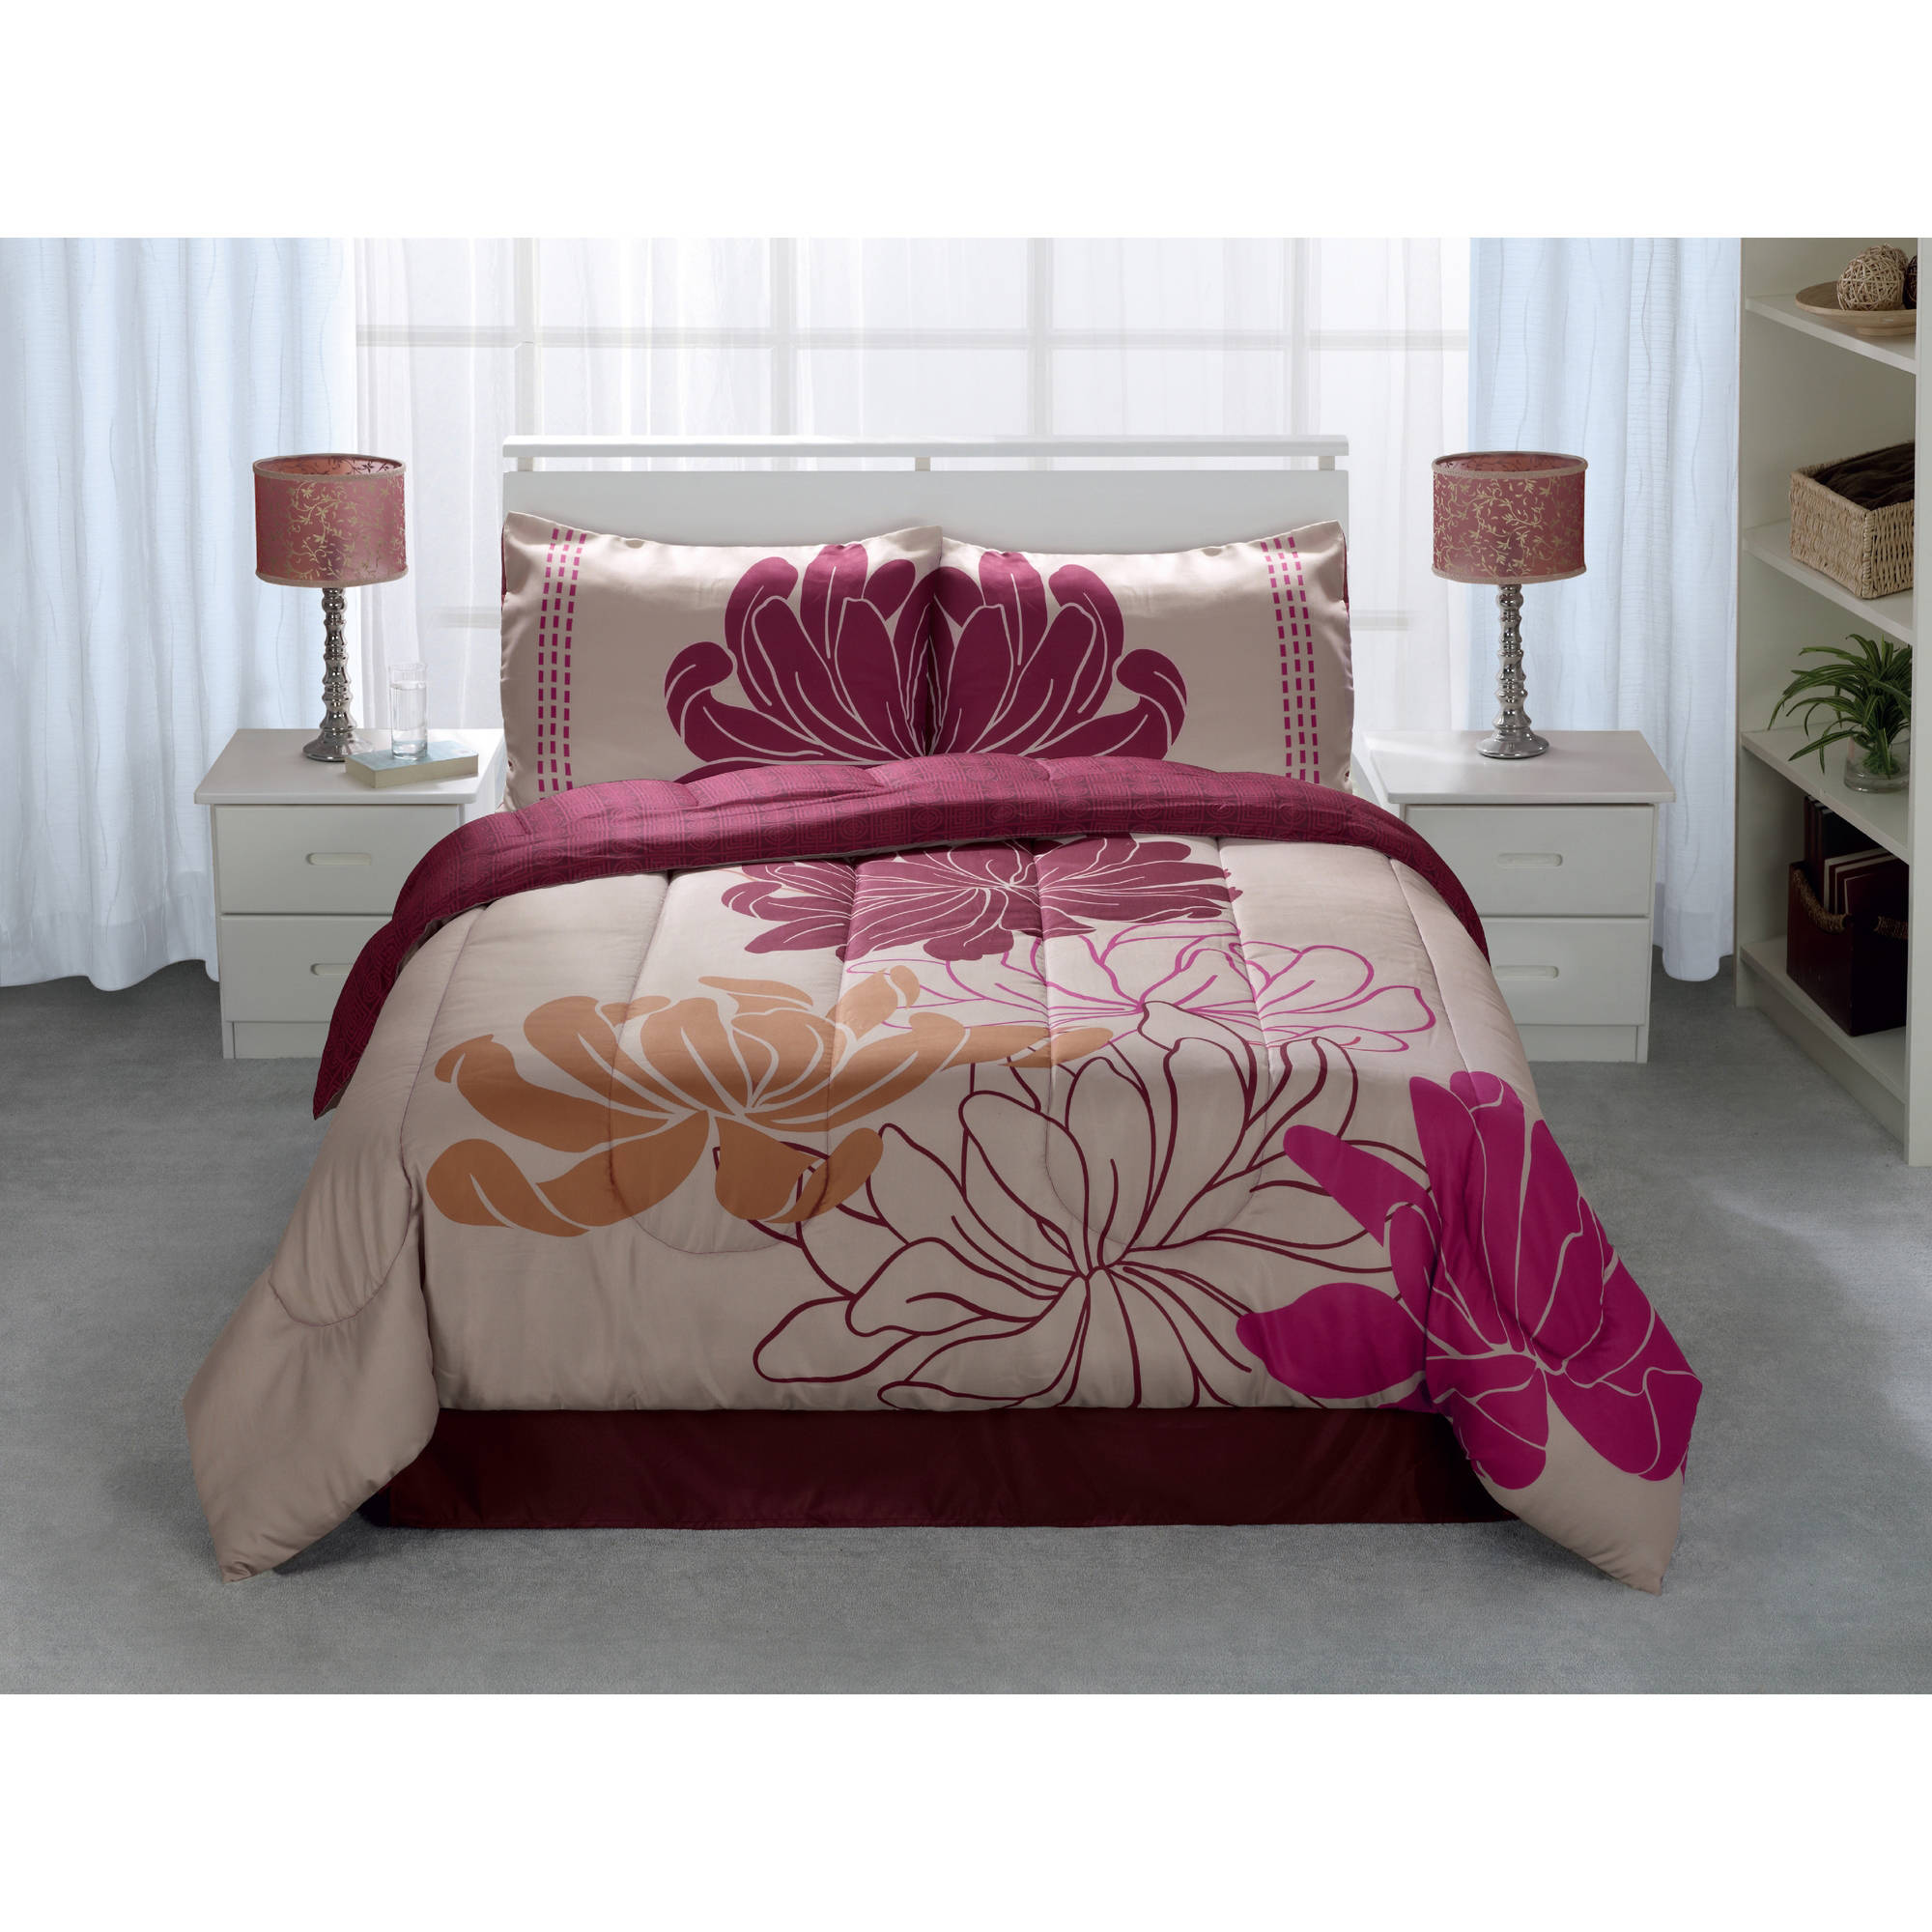 Casa Kiko 4-Piece Reversible Comforter Set